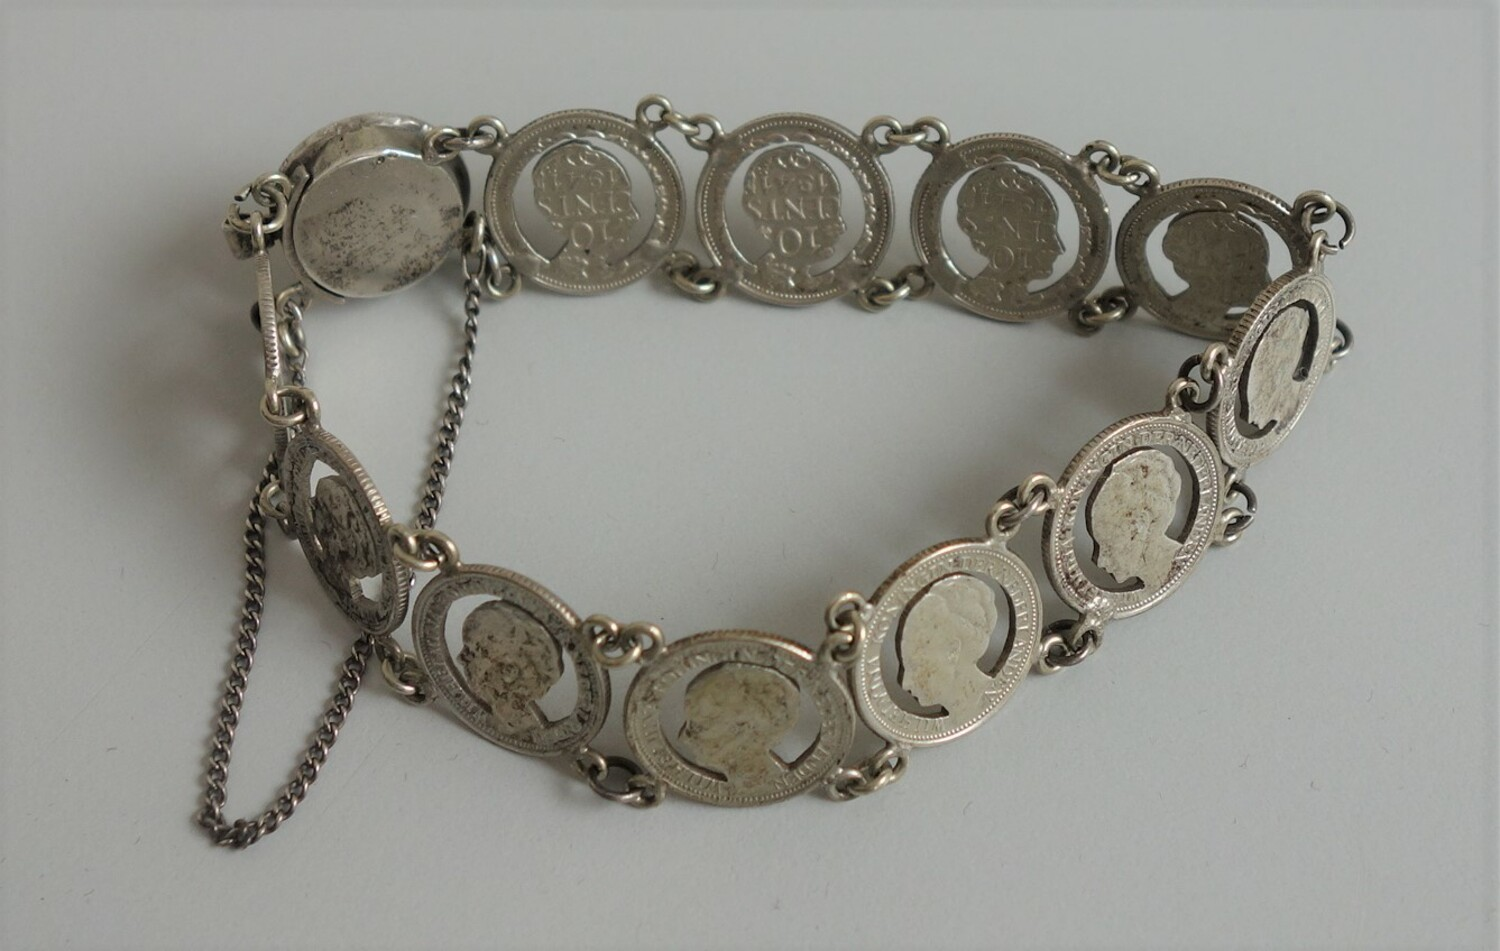 Bracelet made of silver Wilhelmina coins (TRC 2020.2714).